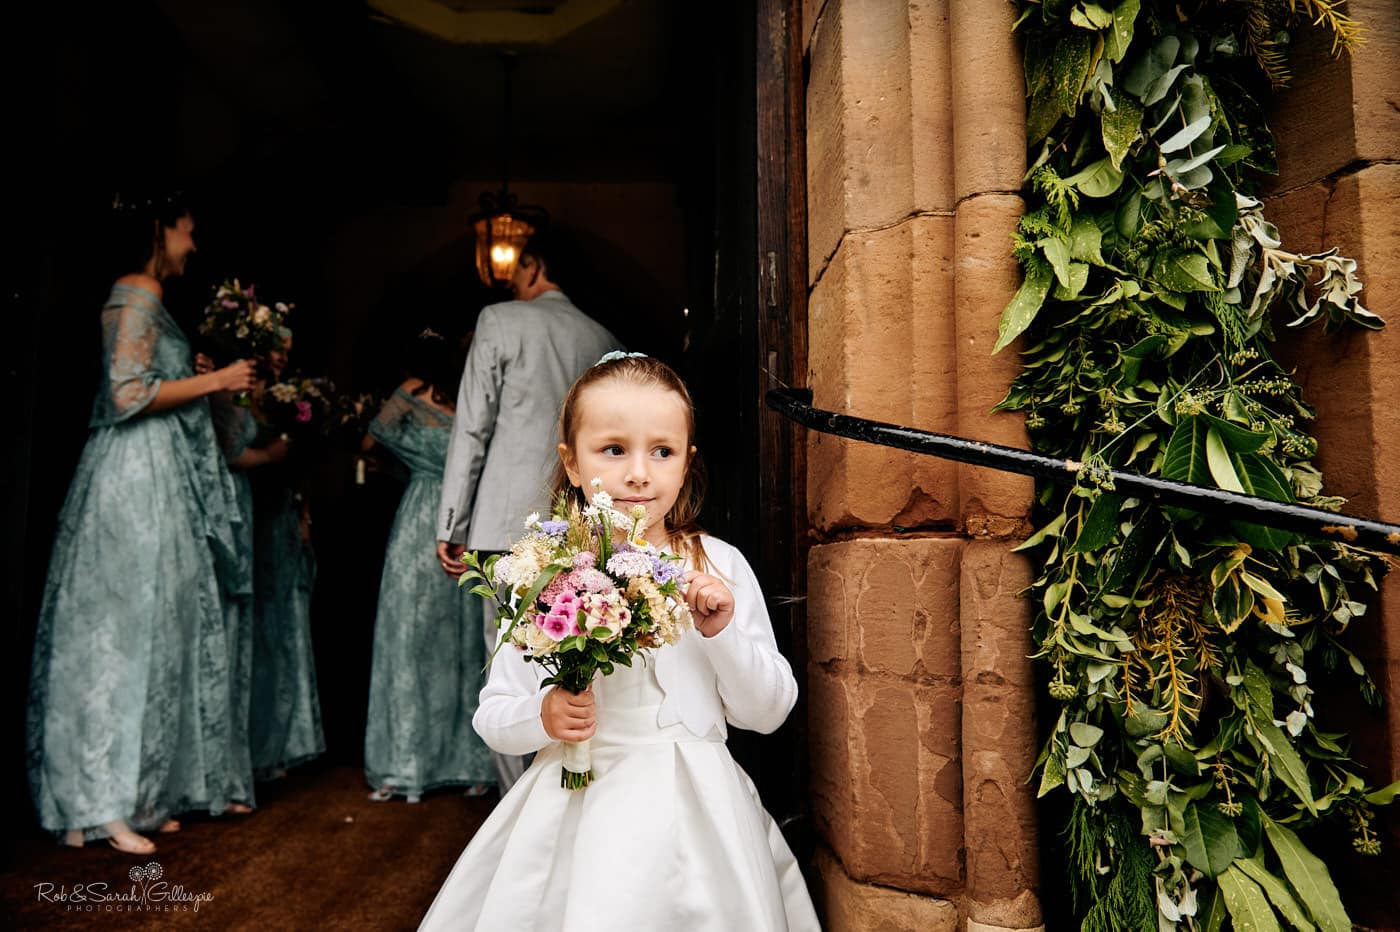 Flowergirl waiting for bride on steps at Hanbury Church